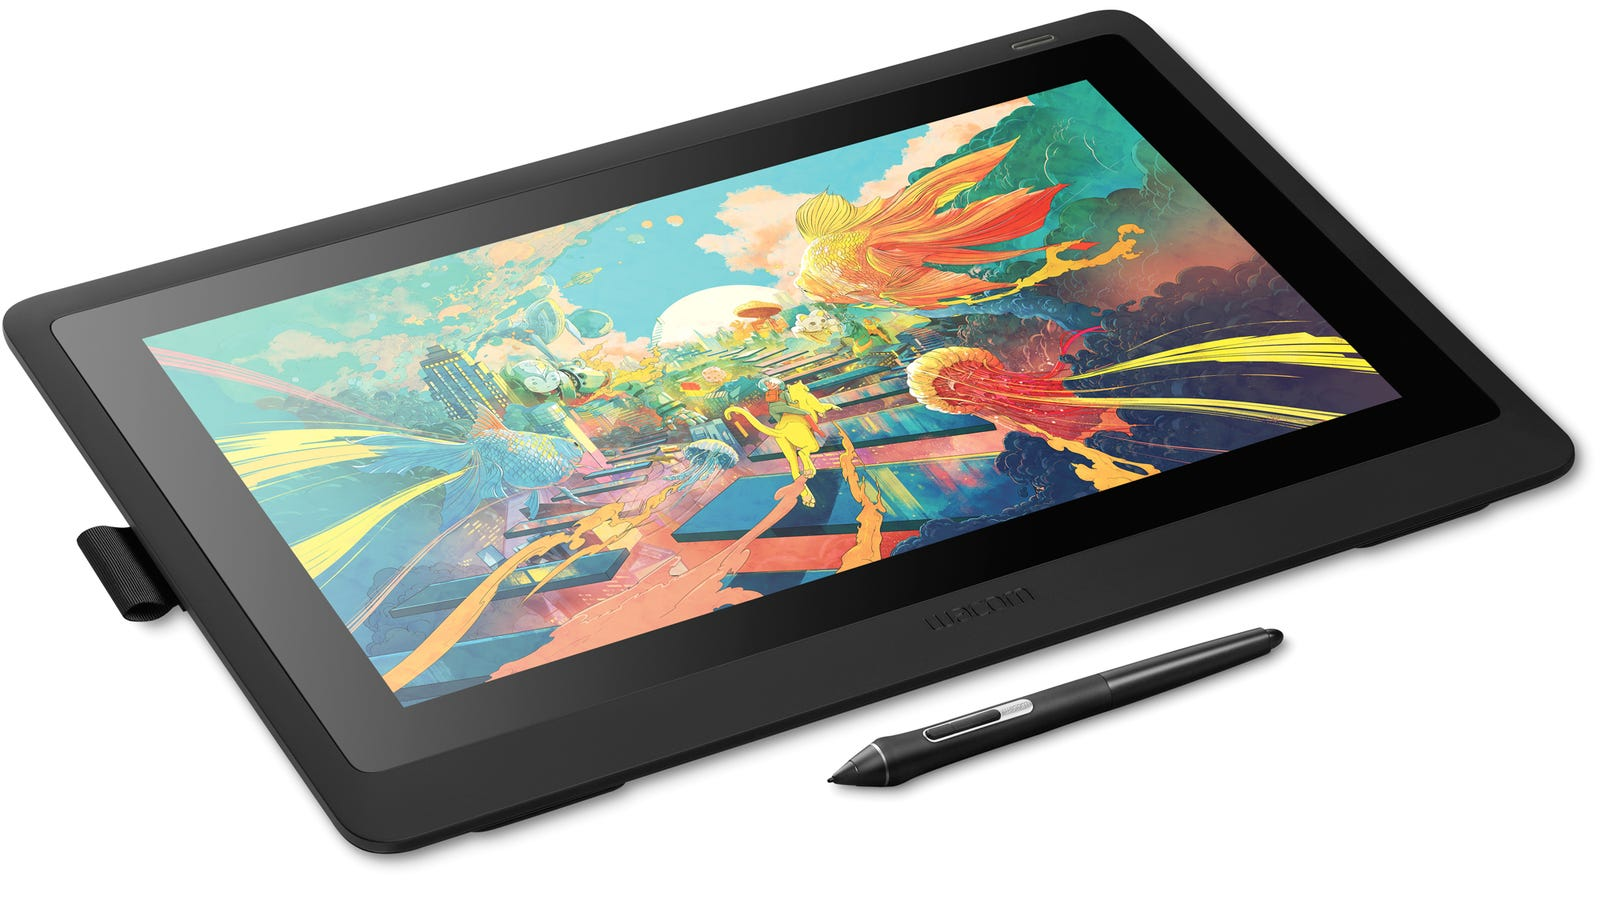 Wacoms New Drawing Tablets Are Cheap Enough For Aspiring Artists